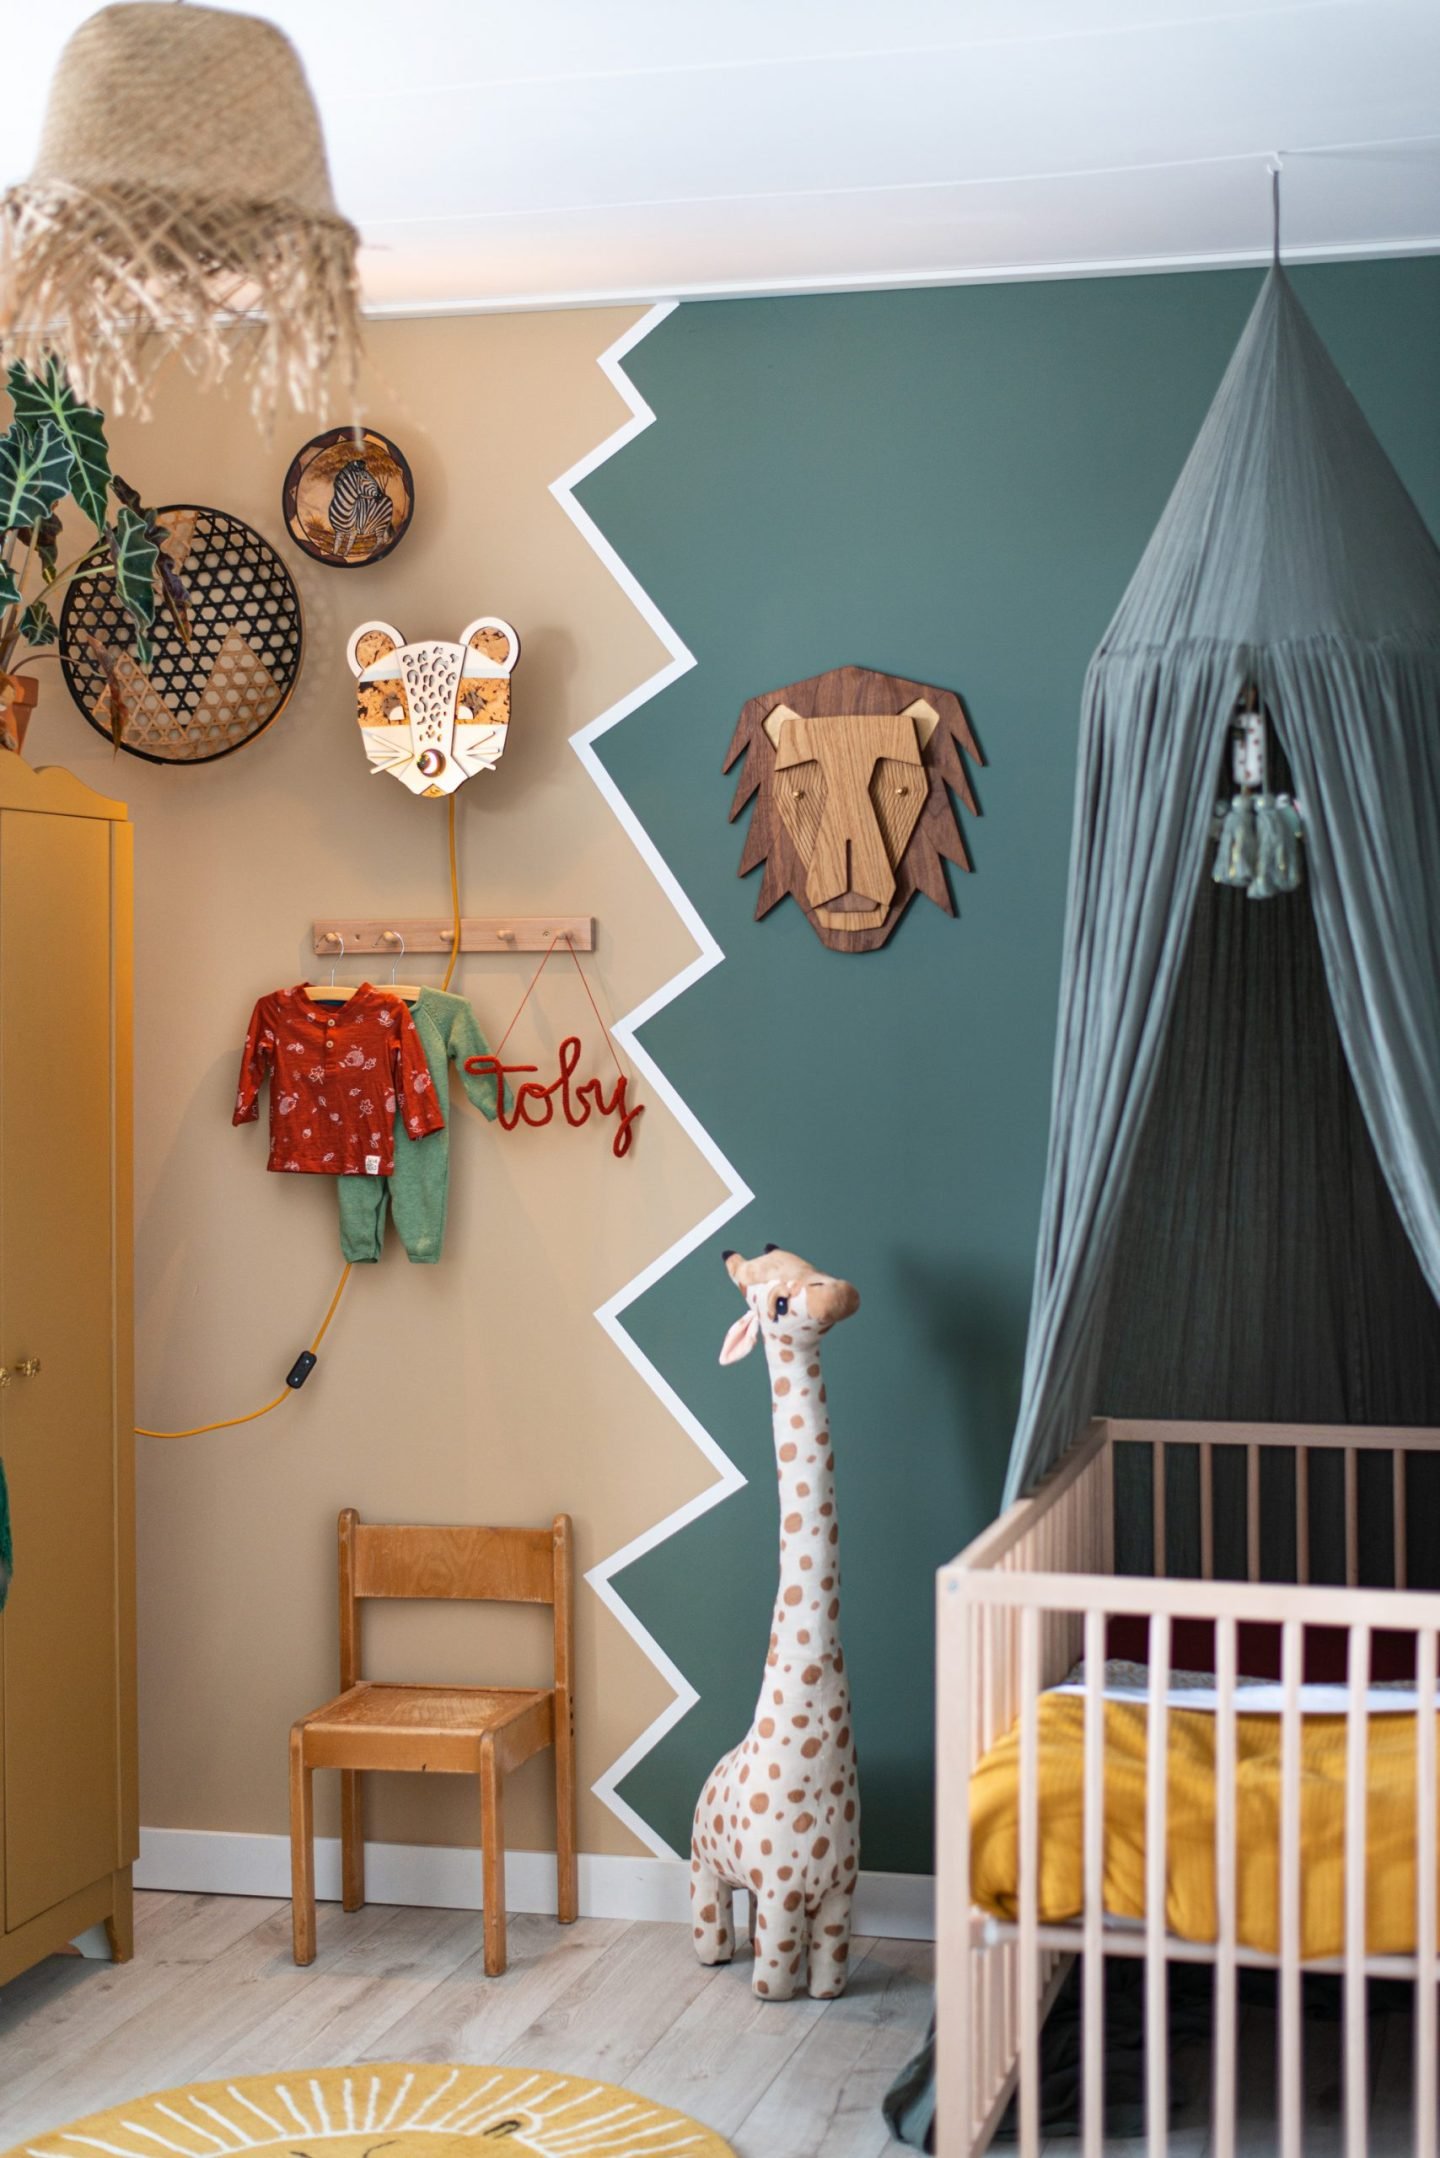 keeelly91blog nachtlampje made by the woods interieur babykamer kinderkamer nursery room bohemian interior styling kids room